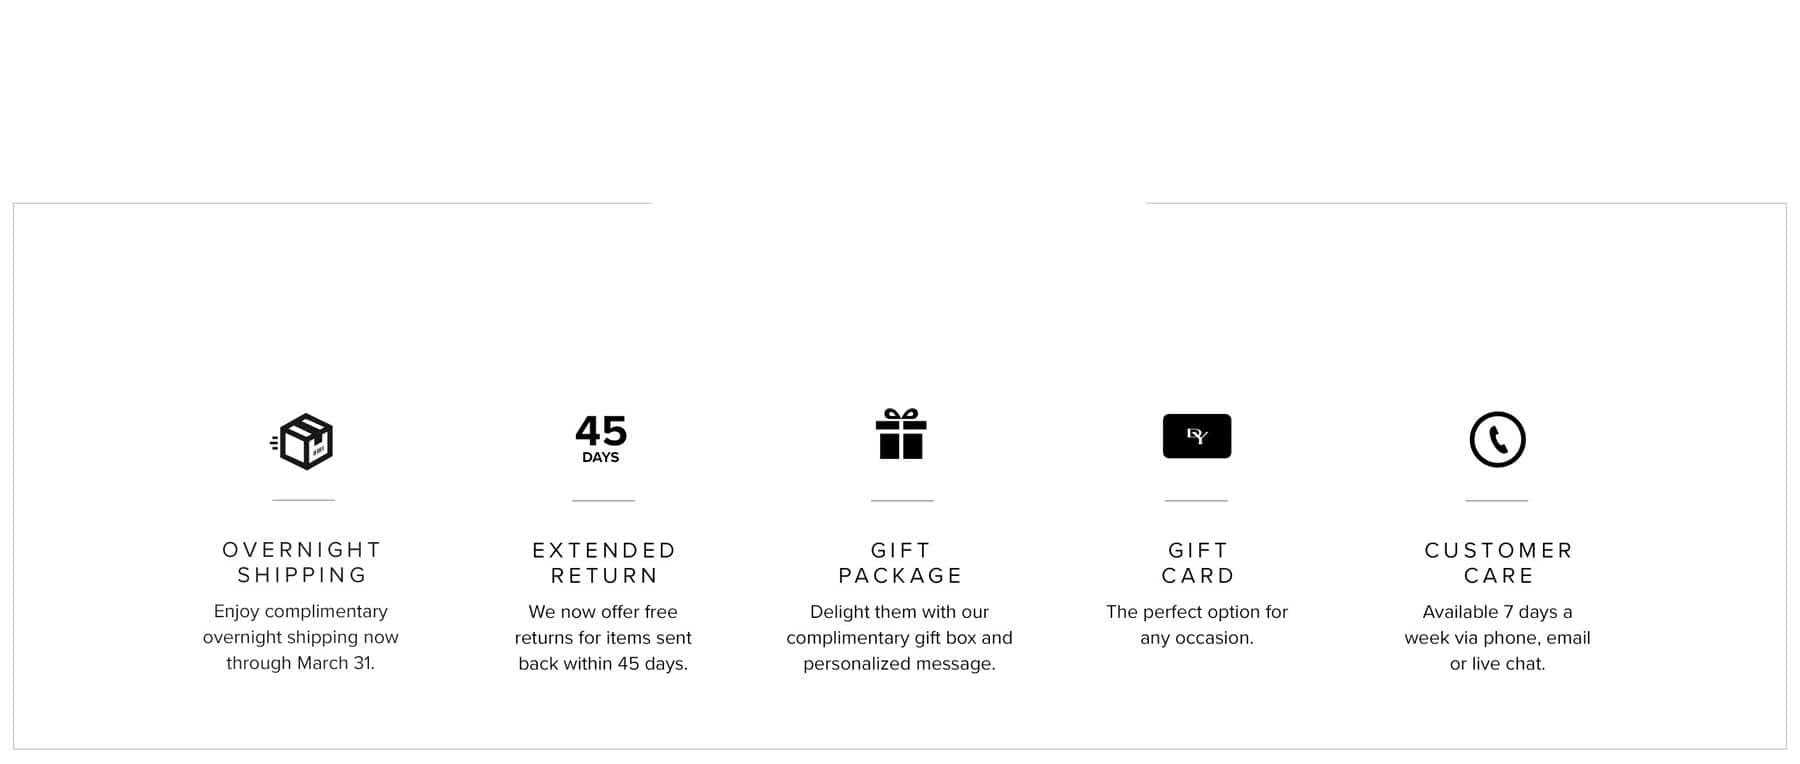 An image of all our customer services. An image of a shipping icon, 45 day return, a gift box icon, a gift card icon and a phone icon. icon,